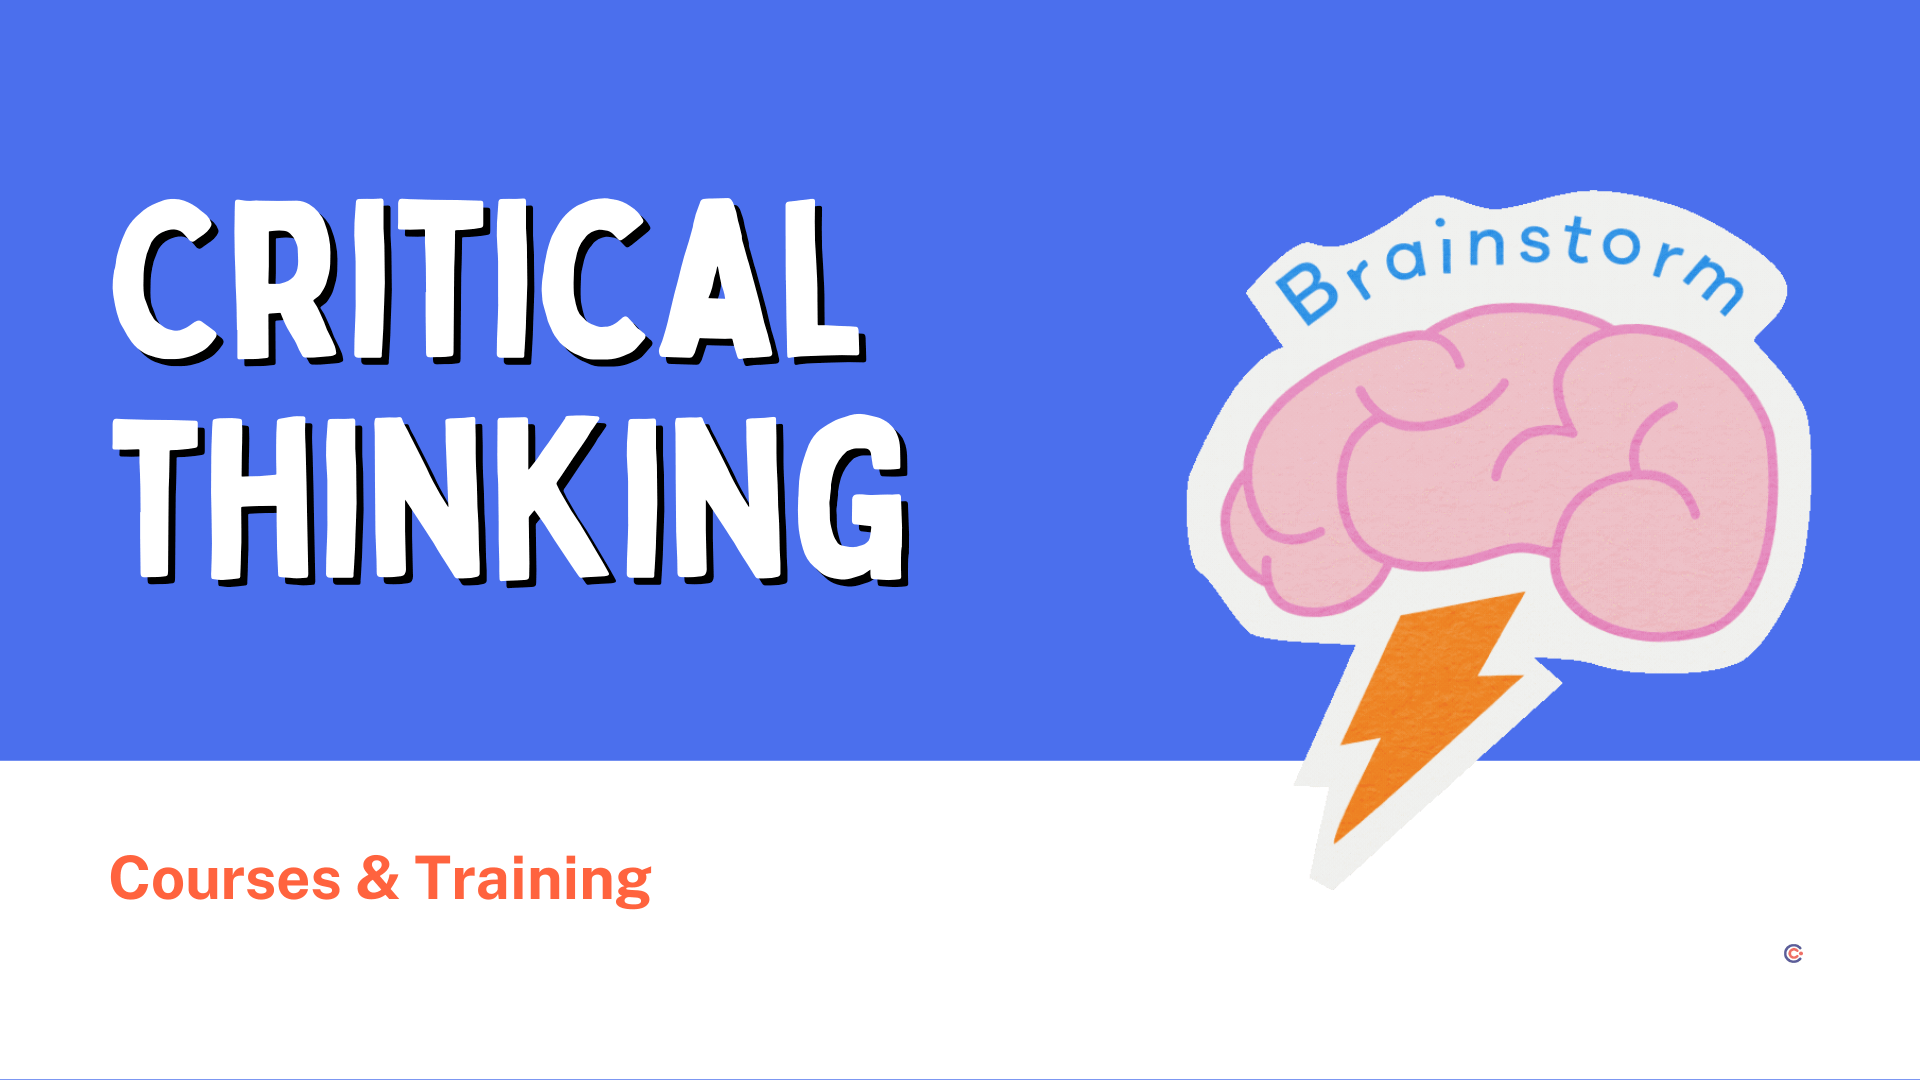 12 Best Critical Thinking Courses & Training - Learn Critical Thinking Online